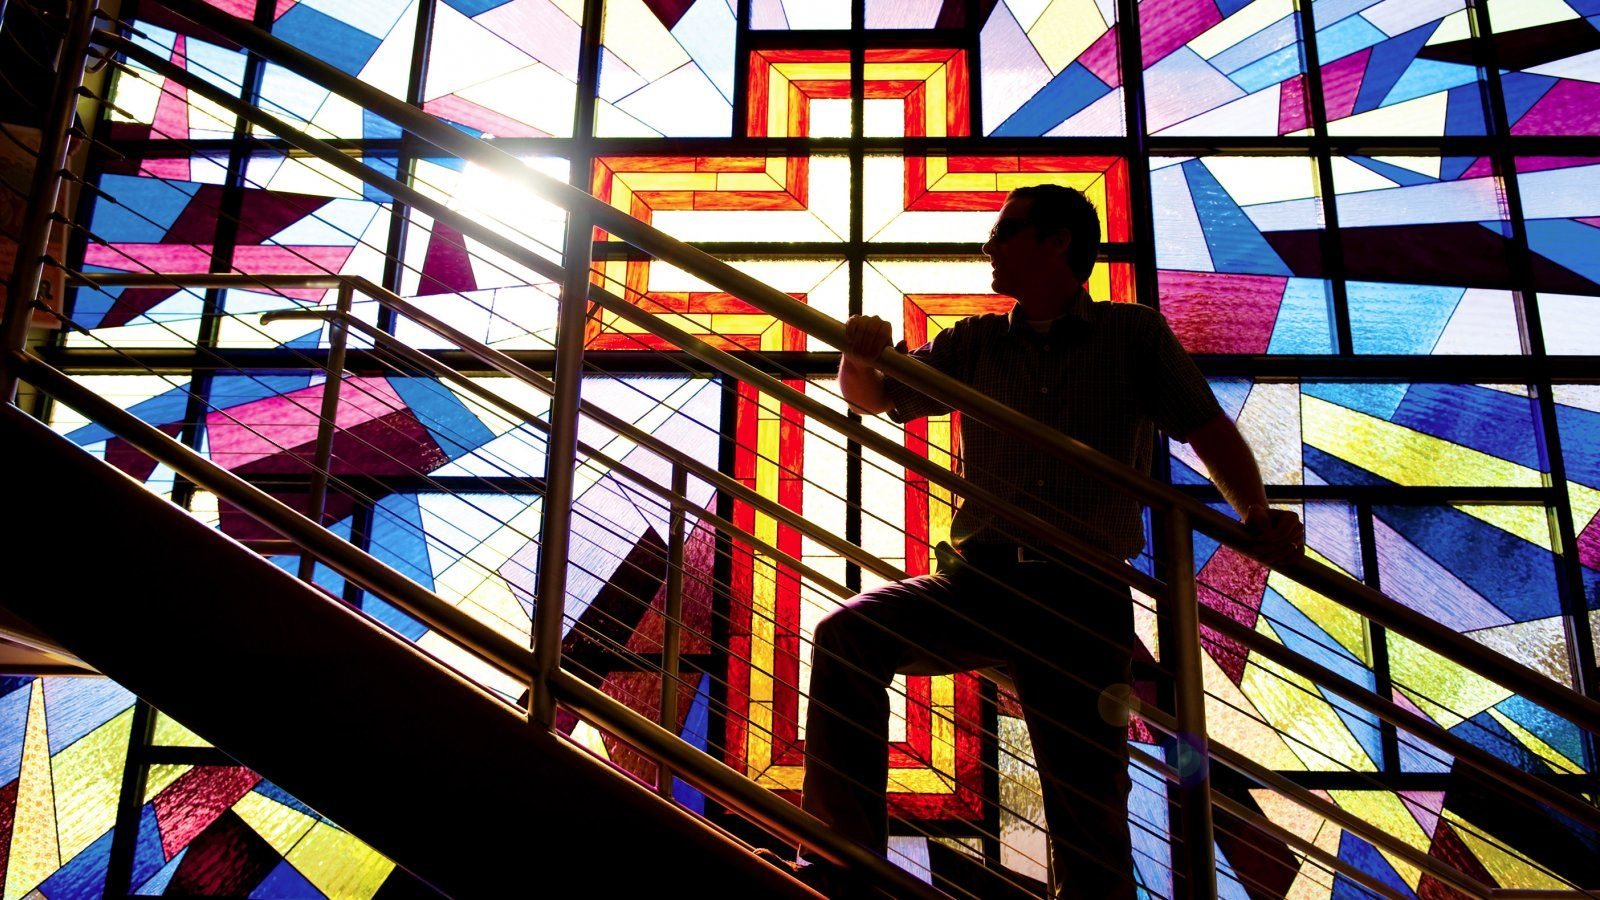 Man climbs staircase in shadow, backlit by sun coming through giant stained glass window of a cross